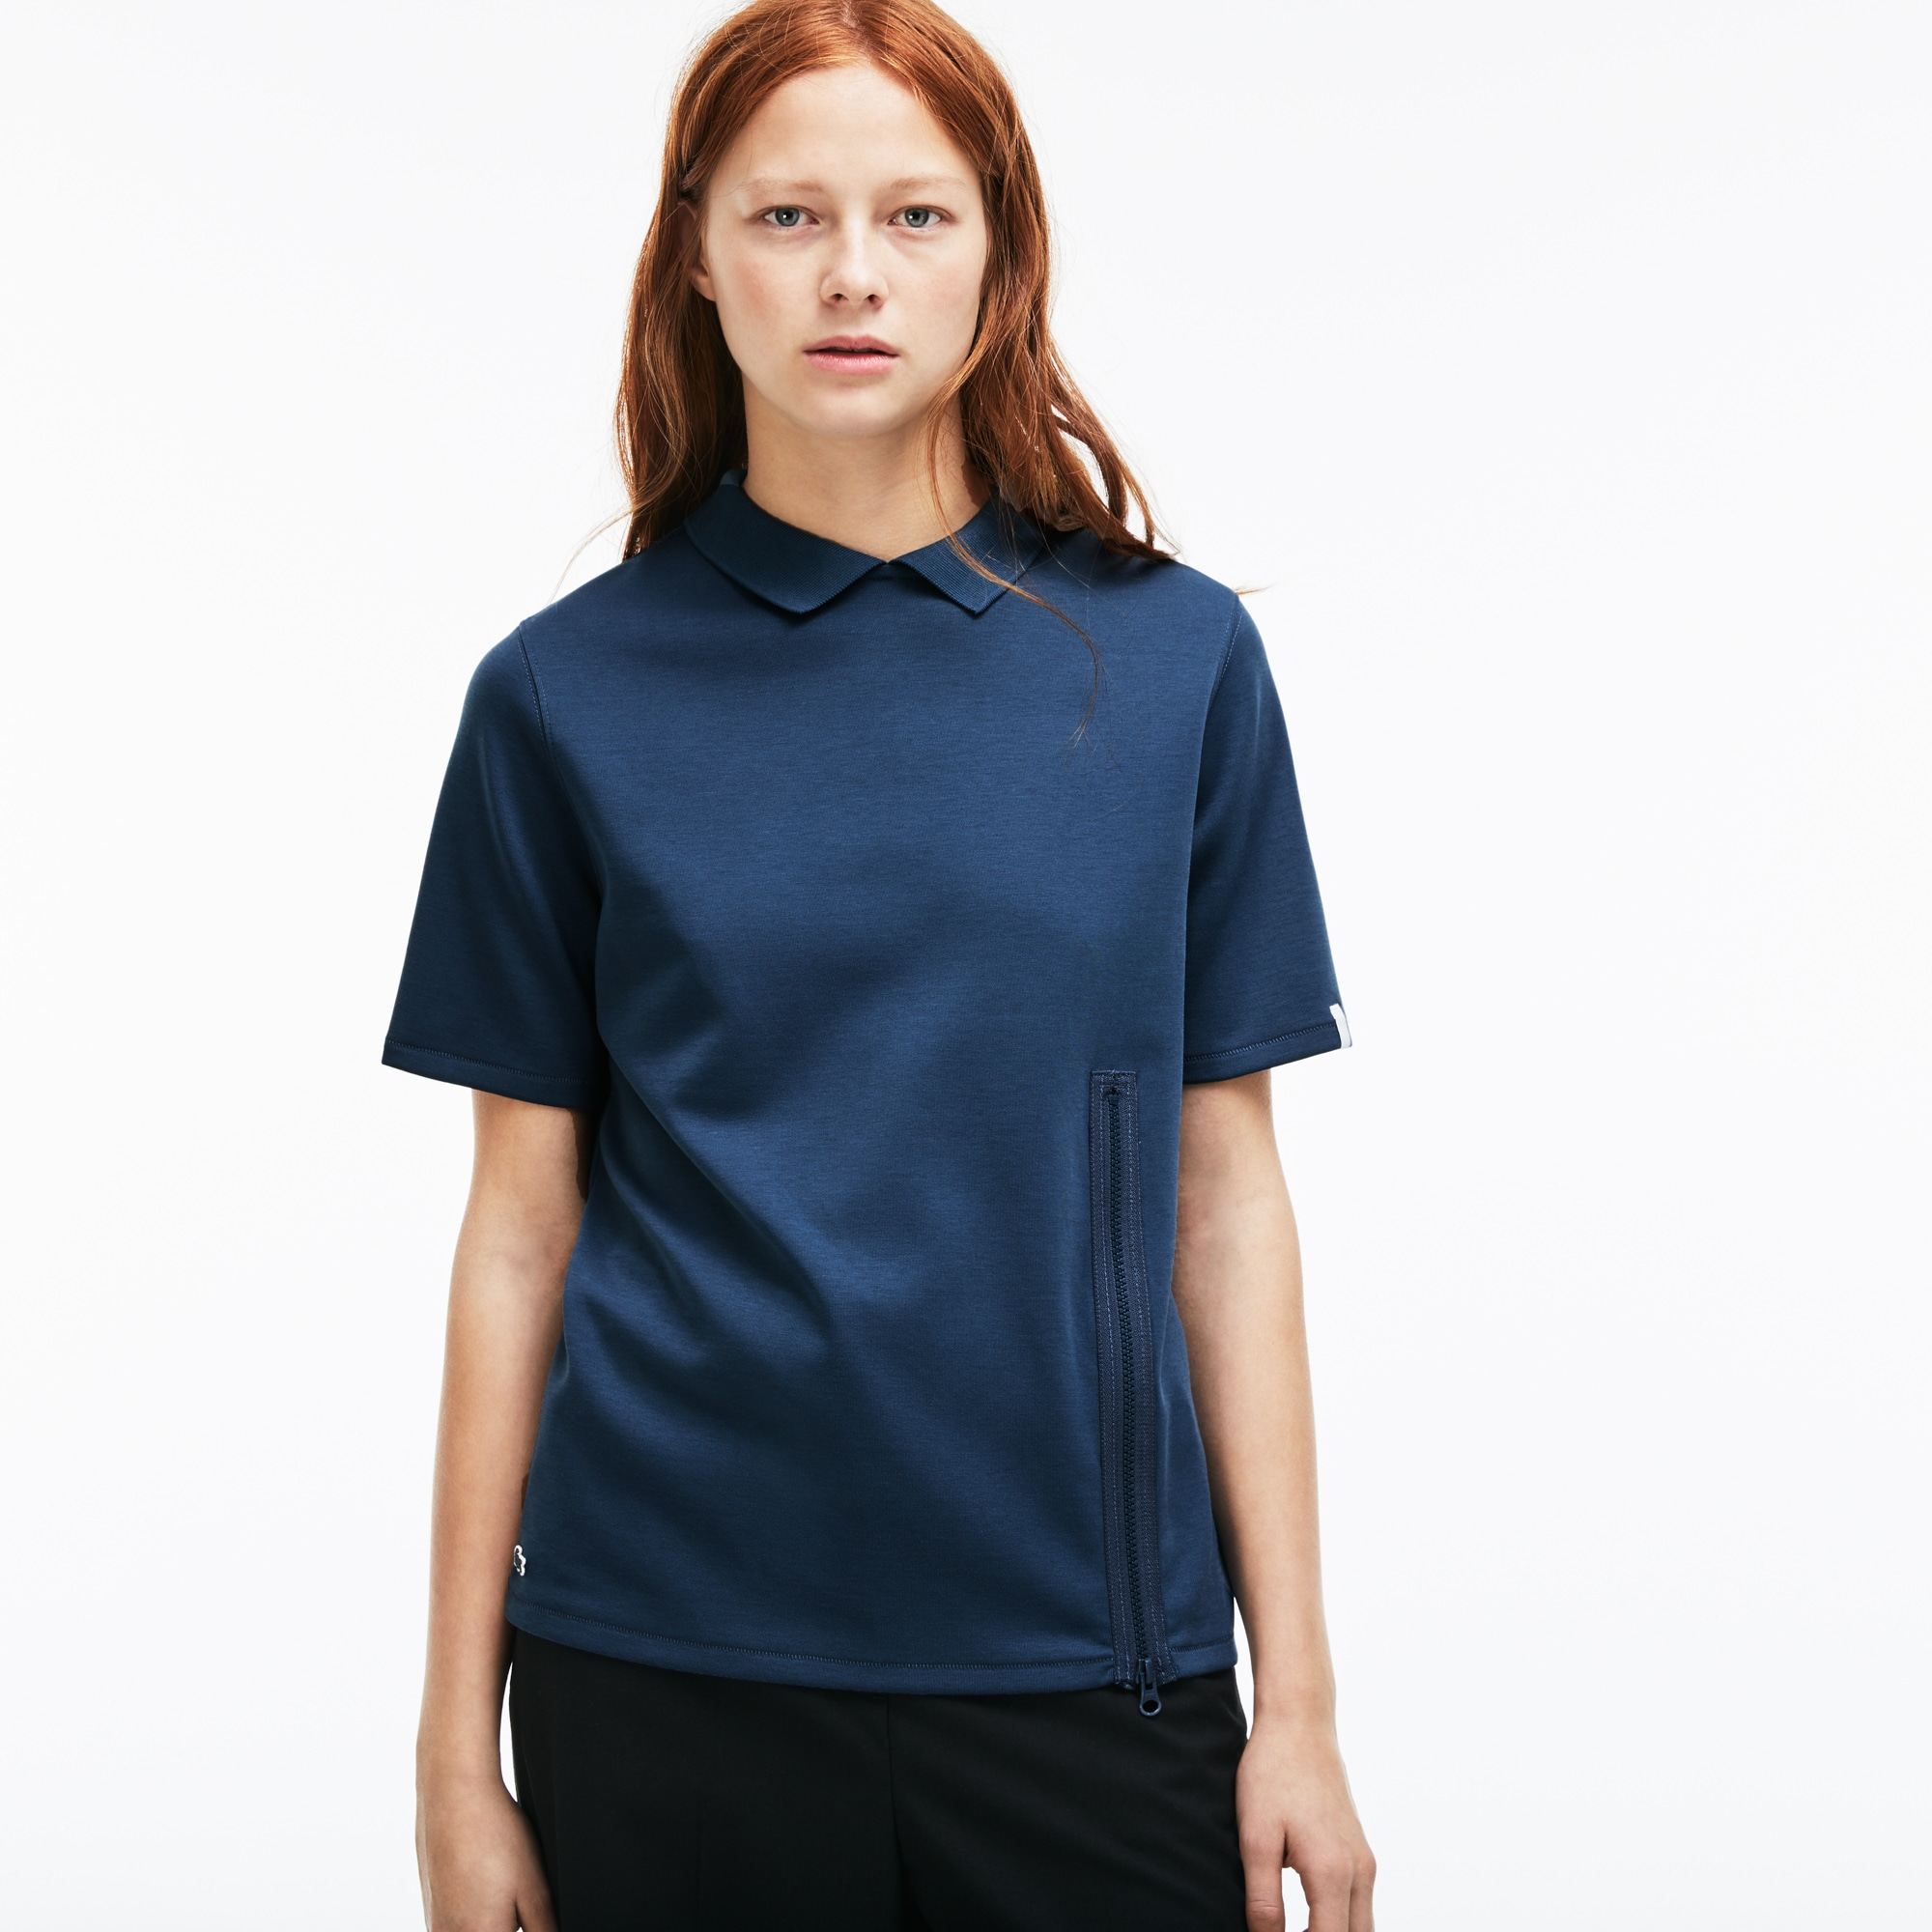 Lacoste LIVE-polo dames jersey met rits